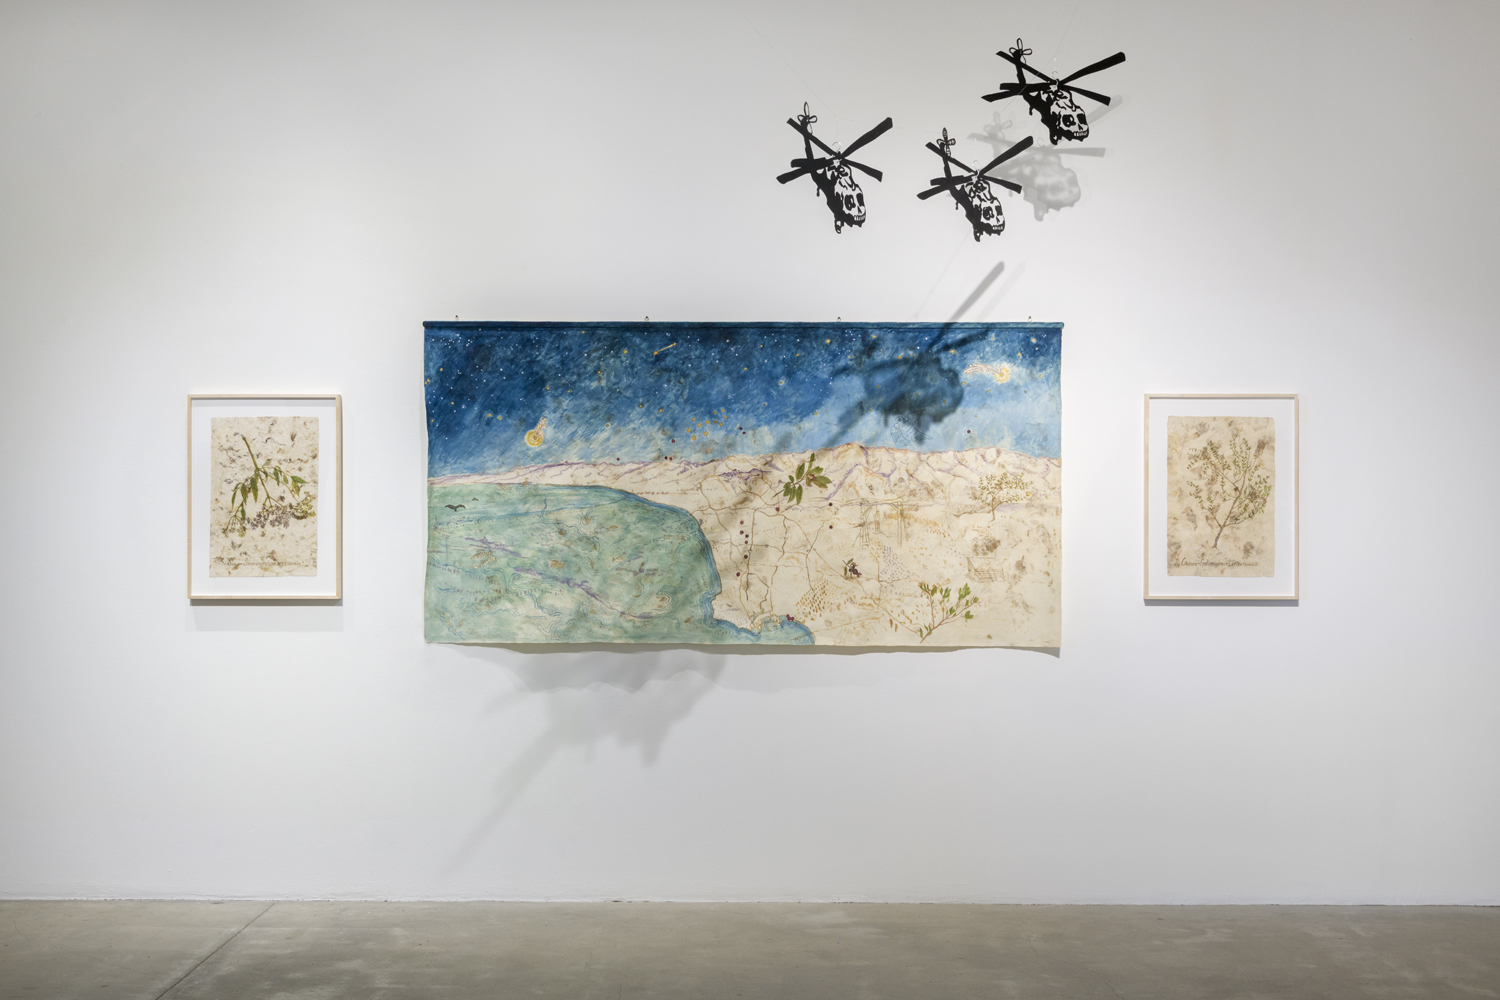 In this artwork installation by the artist Sandy Rodriguez, there are two small framed paintings featuring various plants. In the middle of these two works is a large, horizontal artwork depicting the San Gabriel Mountains. Hanging above this work are three small black helicopter sculptures with skull fronts.